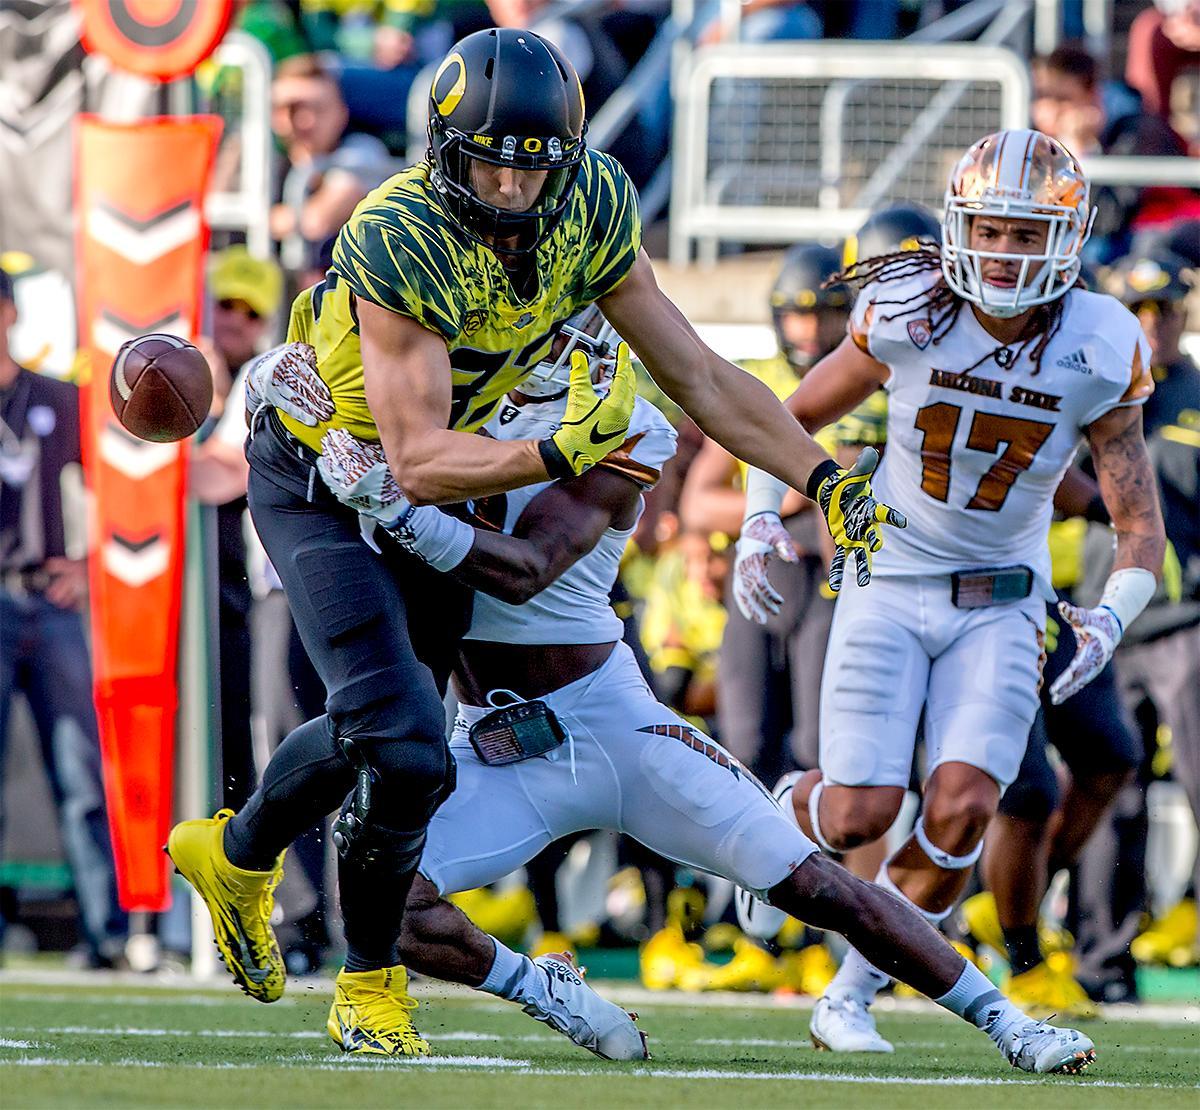 The Duck's Johnny Mundt (#83) watches the ball fly past him as he is taken out while trying to make a catch. The Oregon Ducks broke their losing streak by defeating the ASU Sun Devils on Saturday 54-35. Photo by August Frank, Oregon News Lab